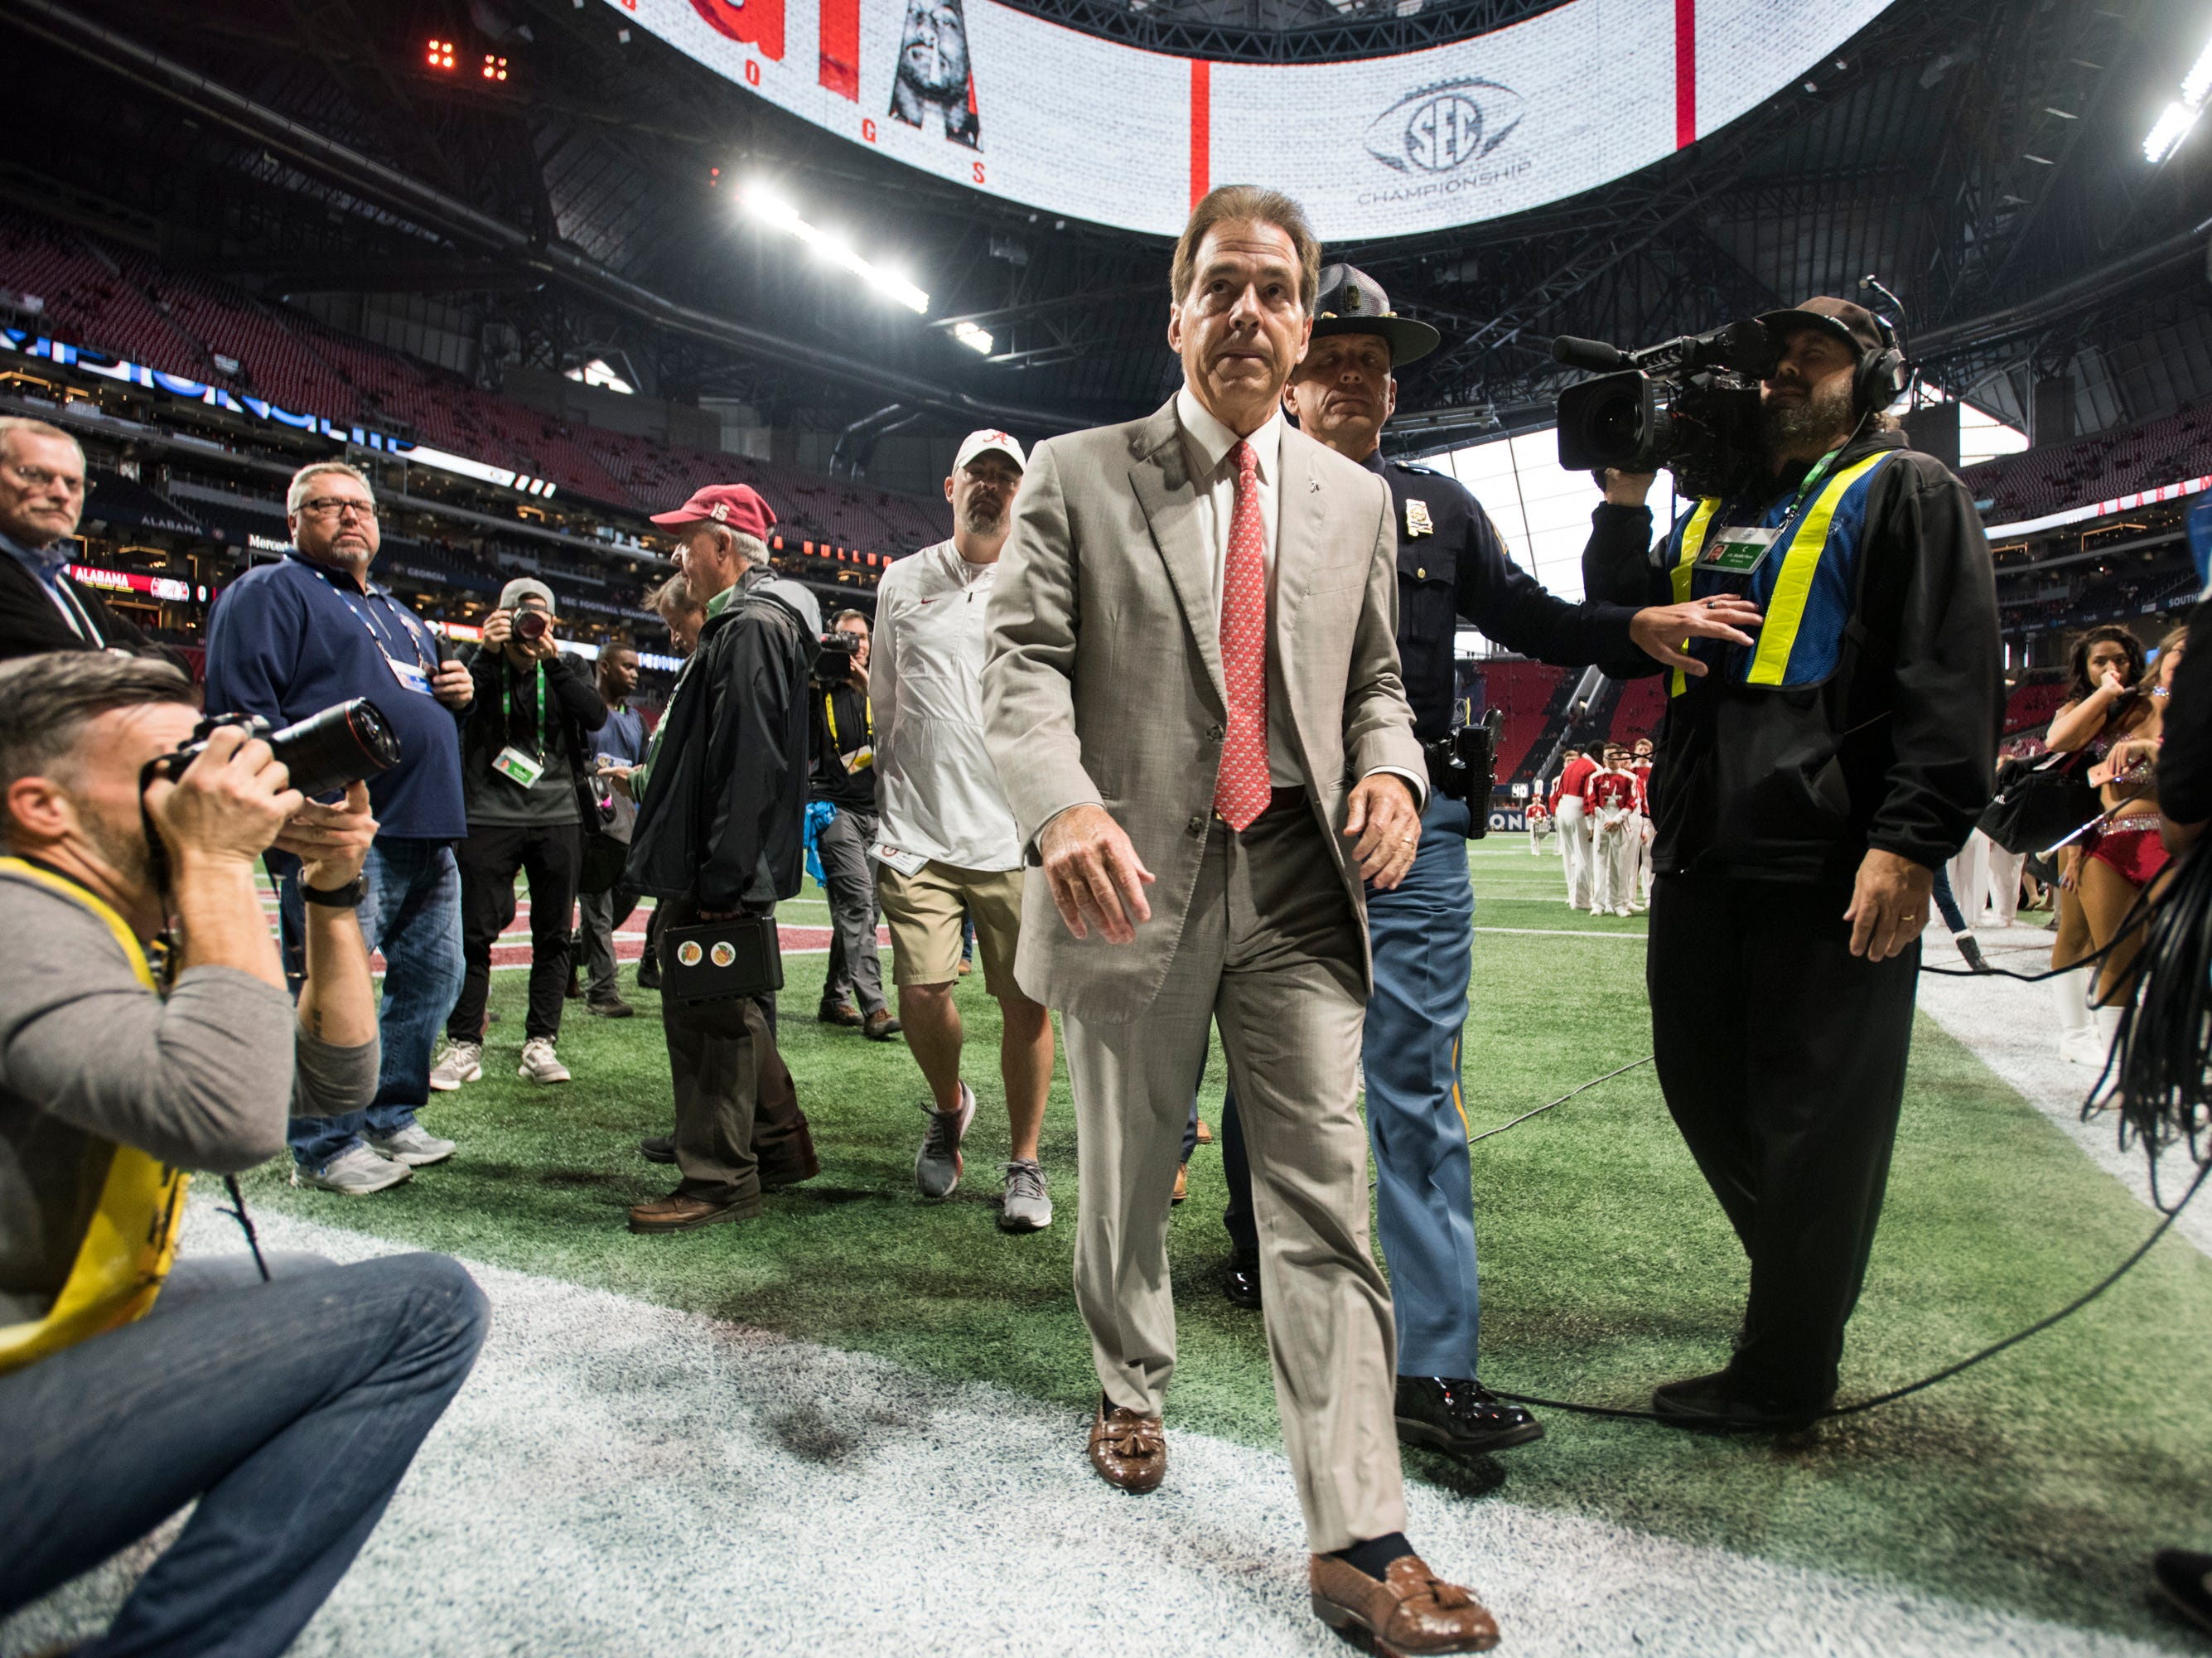 Alabama head coach Nick Saban leaves the field before the SEC Championship game at Mercedes-Benz Stadium in Atlanta, Ga., on Saturday Dec. 1, 2018.